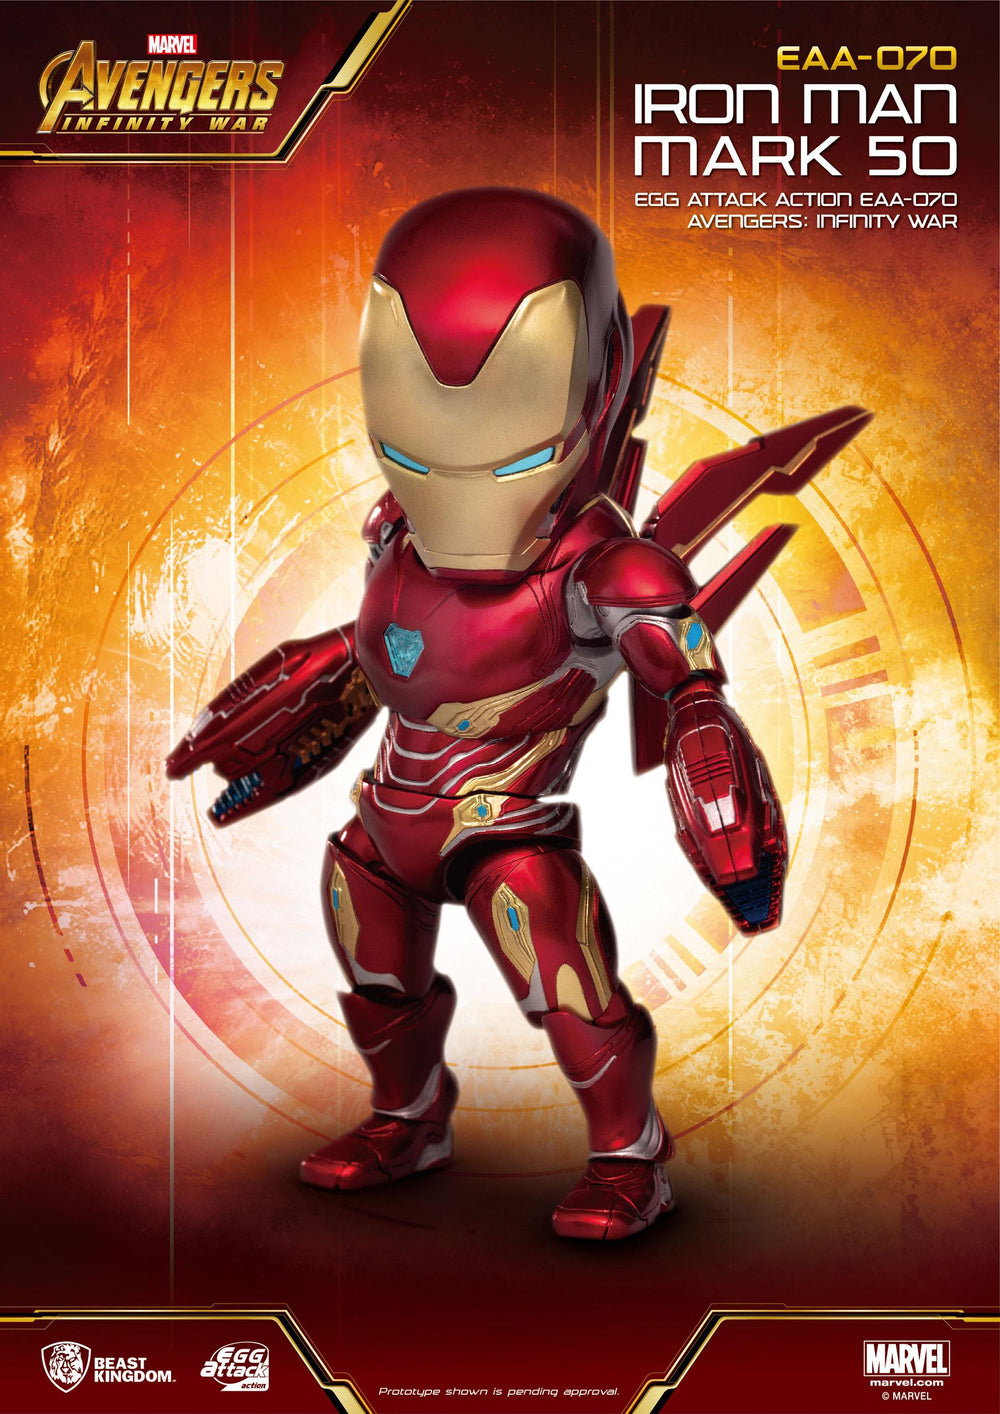 Beast Kingdom Avengers: Infinity War Iron Man Mark 50 Egg Attack Action Figure